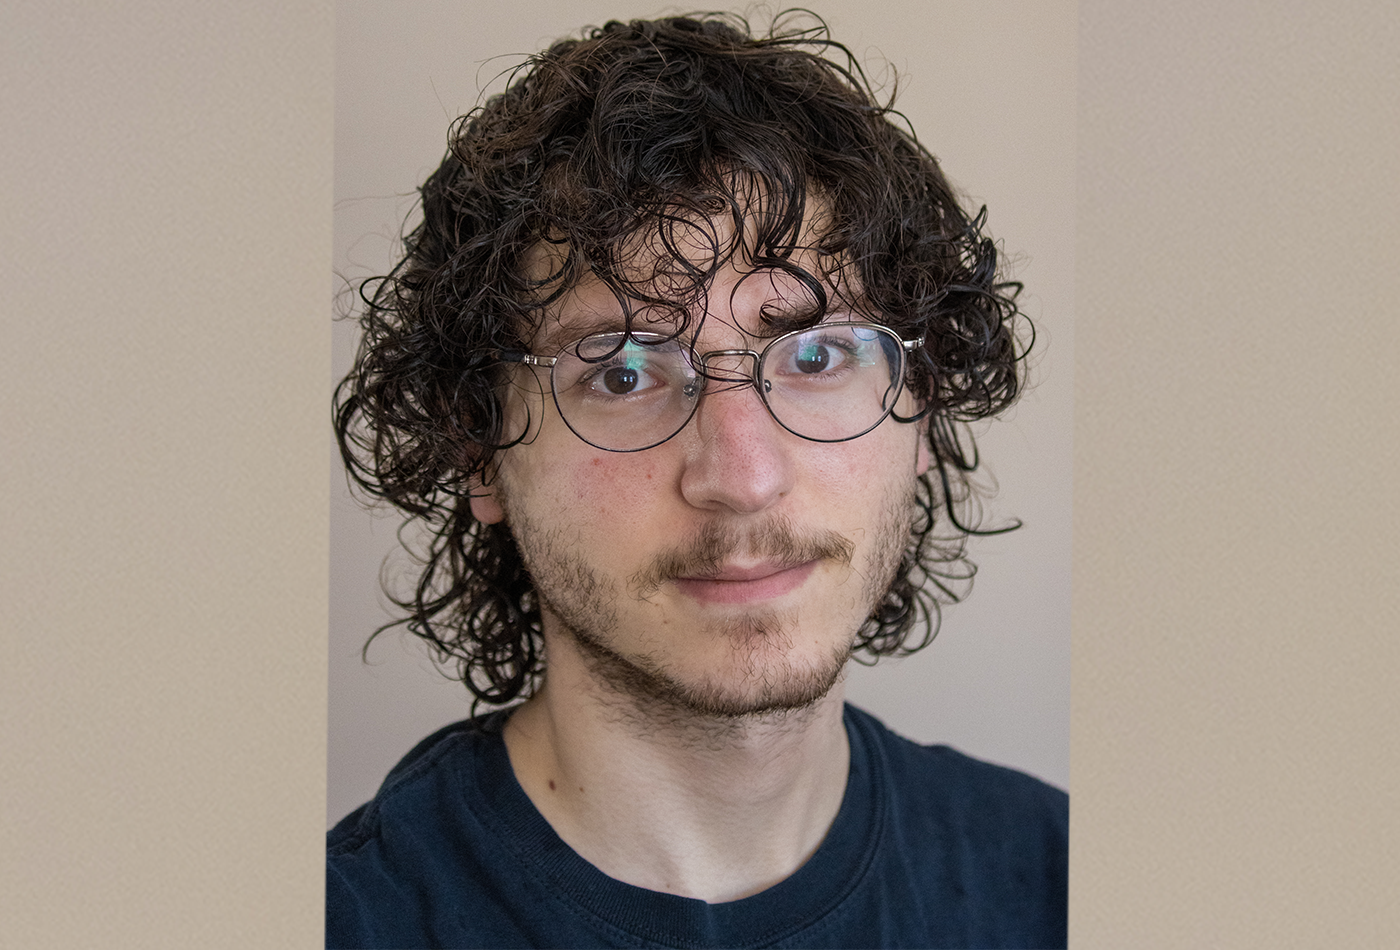 A headshot of a male graduate student wearing glasses.